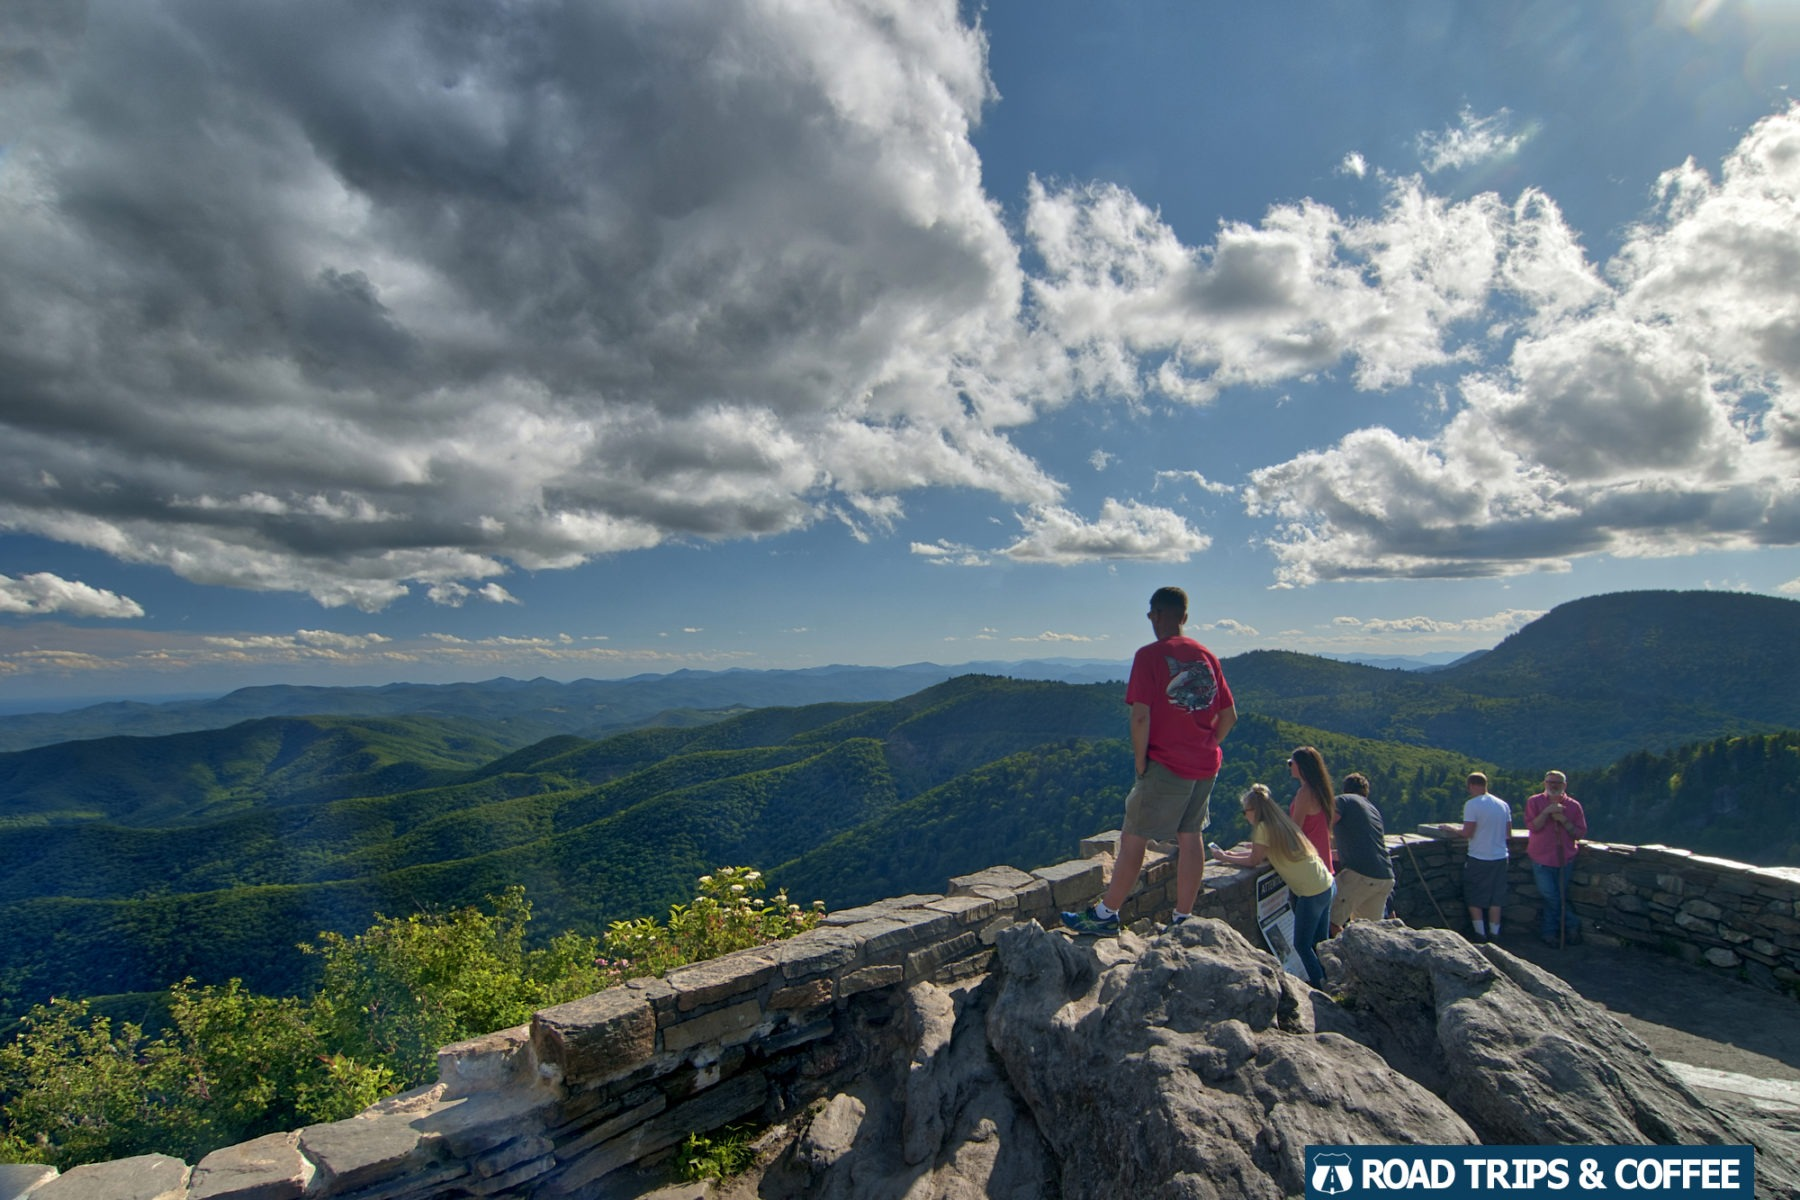 A family enjoys the view from the Devil's Courthouse Overlook on the Blue Ridge Parkway in North Carolina